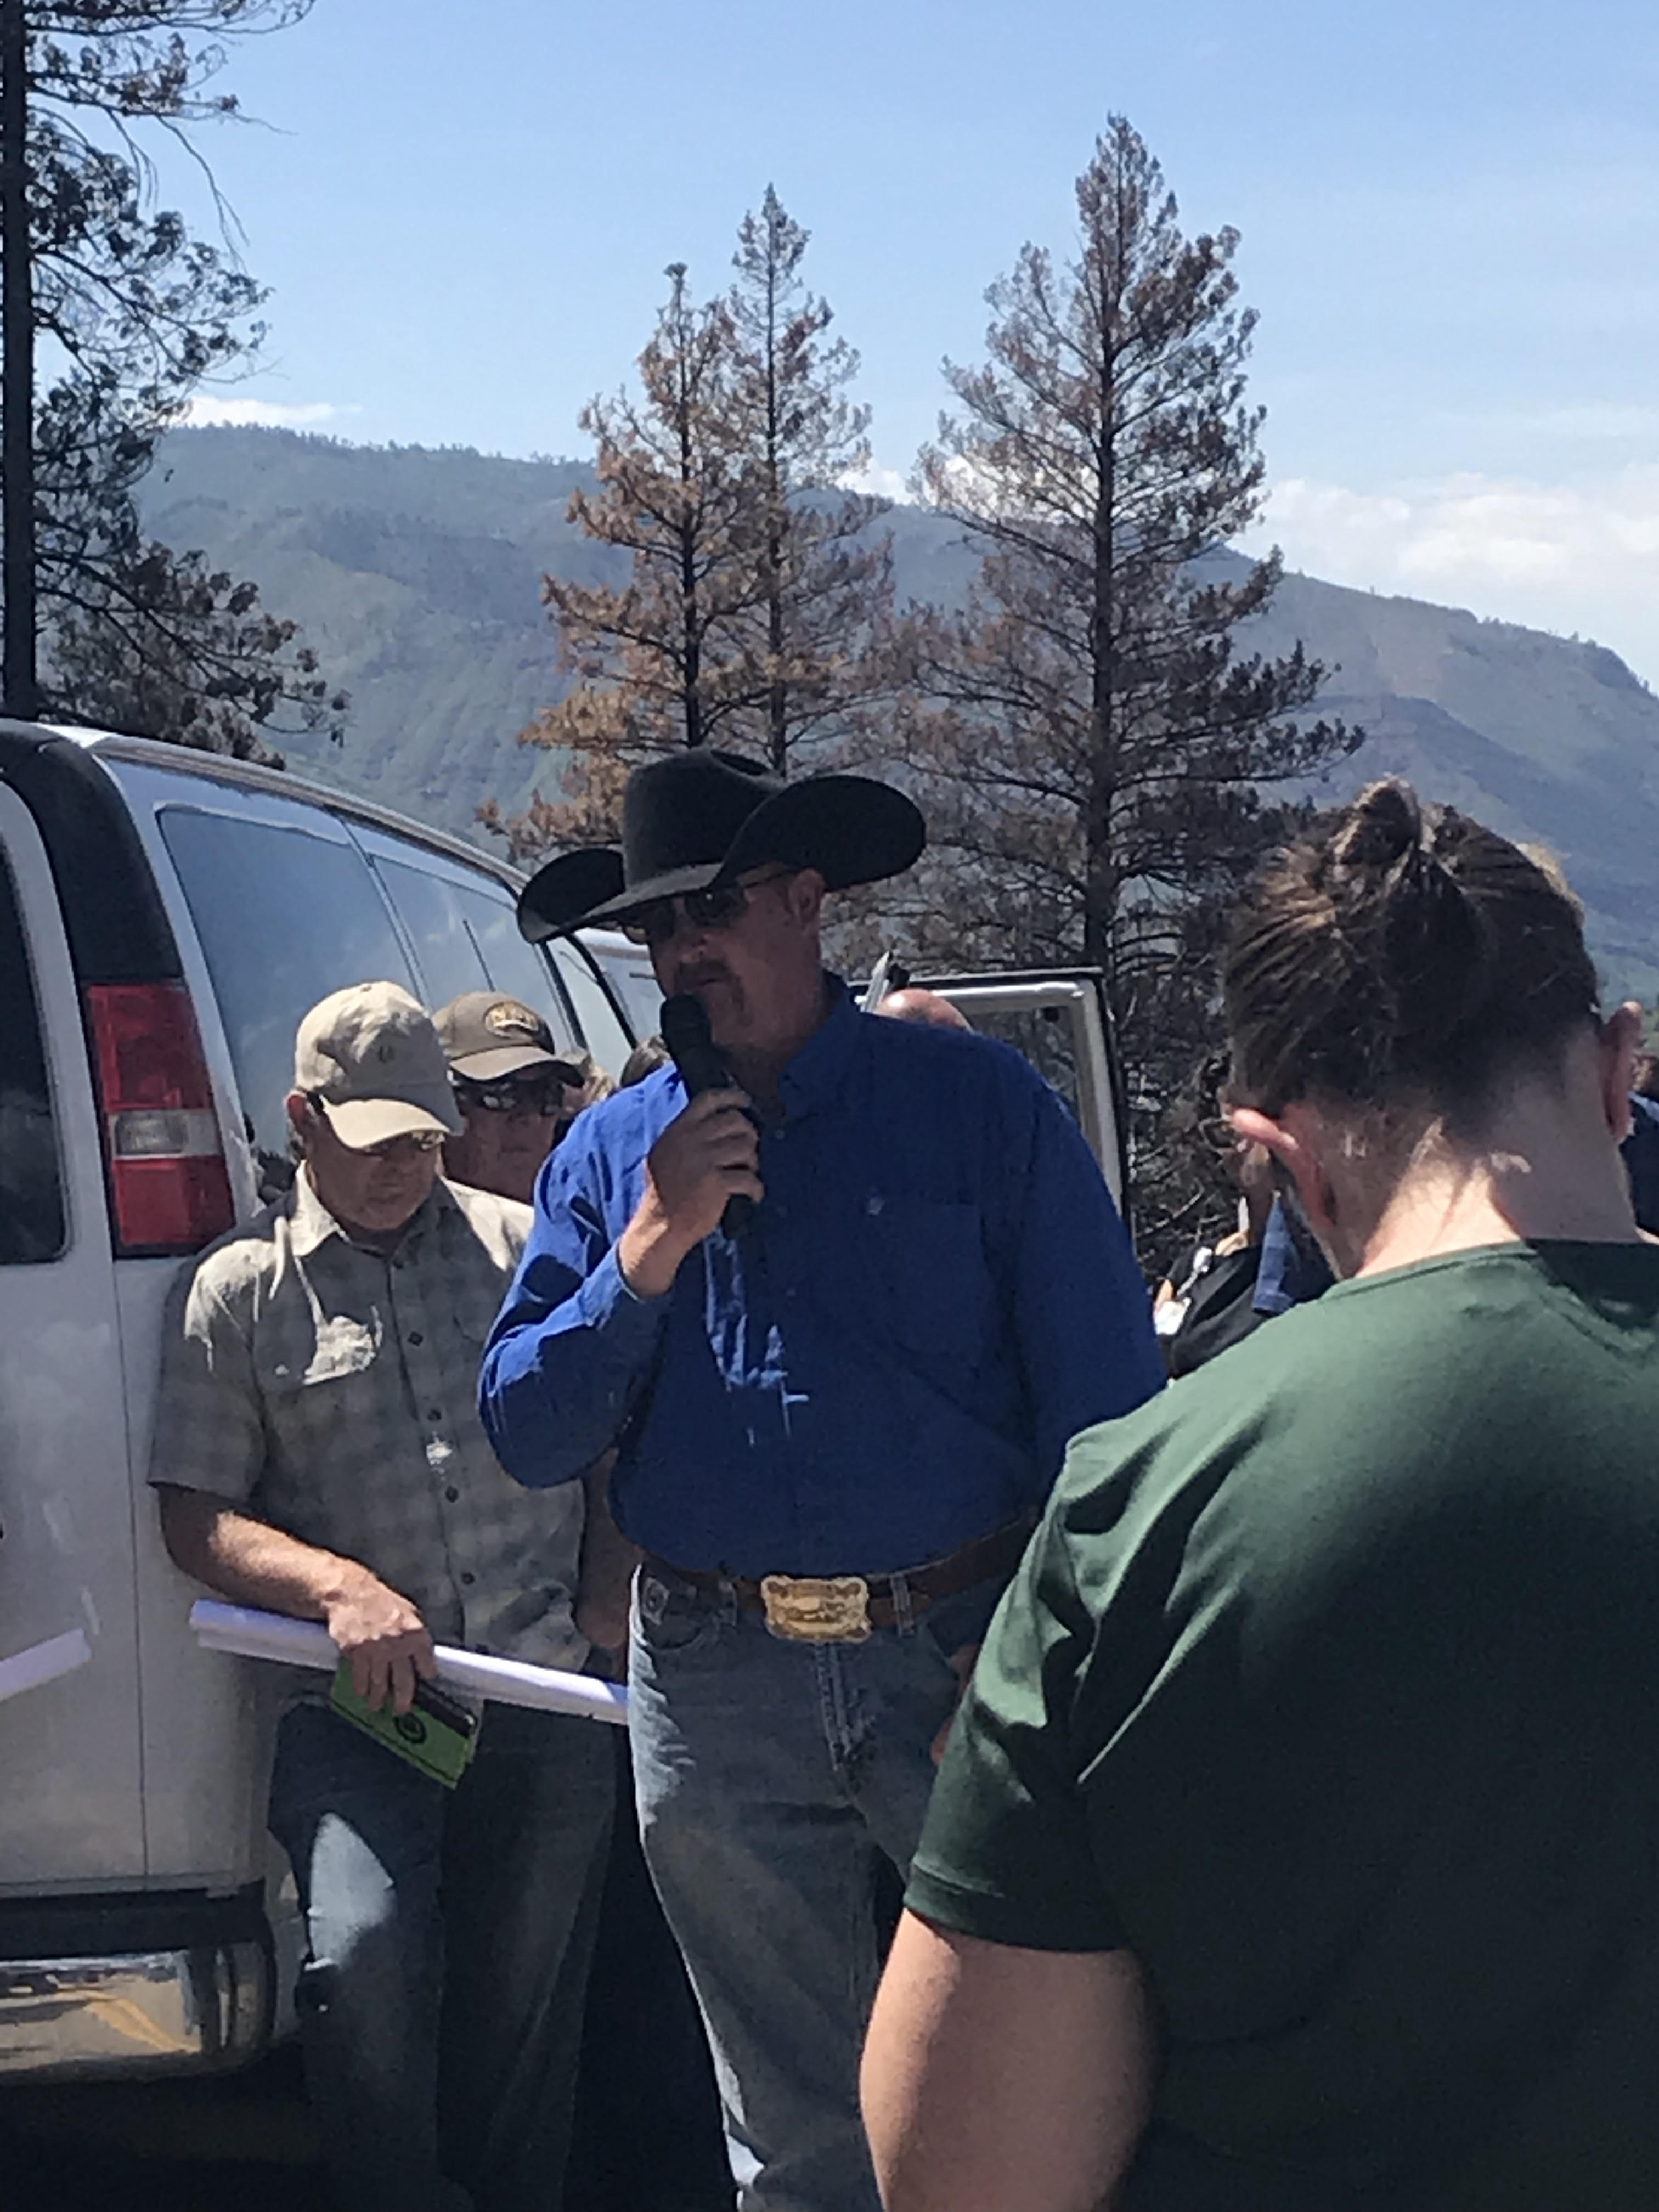 Jonathan Patcheck, a brand inspector from Southwest Colorado speaks during the drought tour about the impacts of the drought and the 416 fire on his ranch